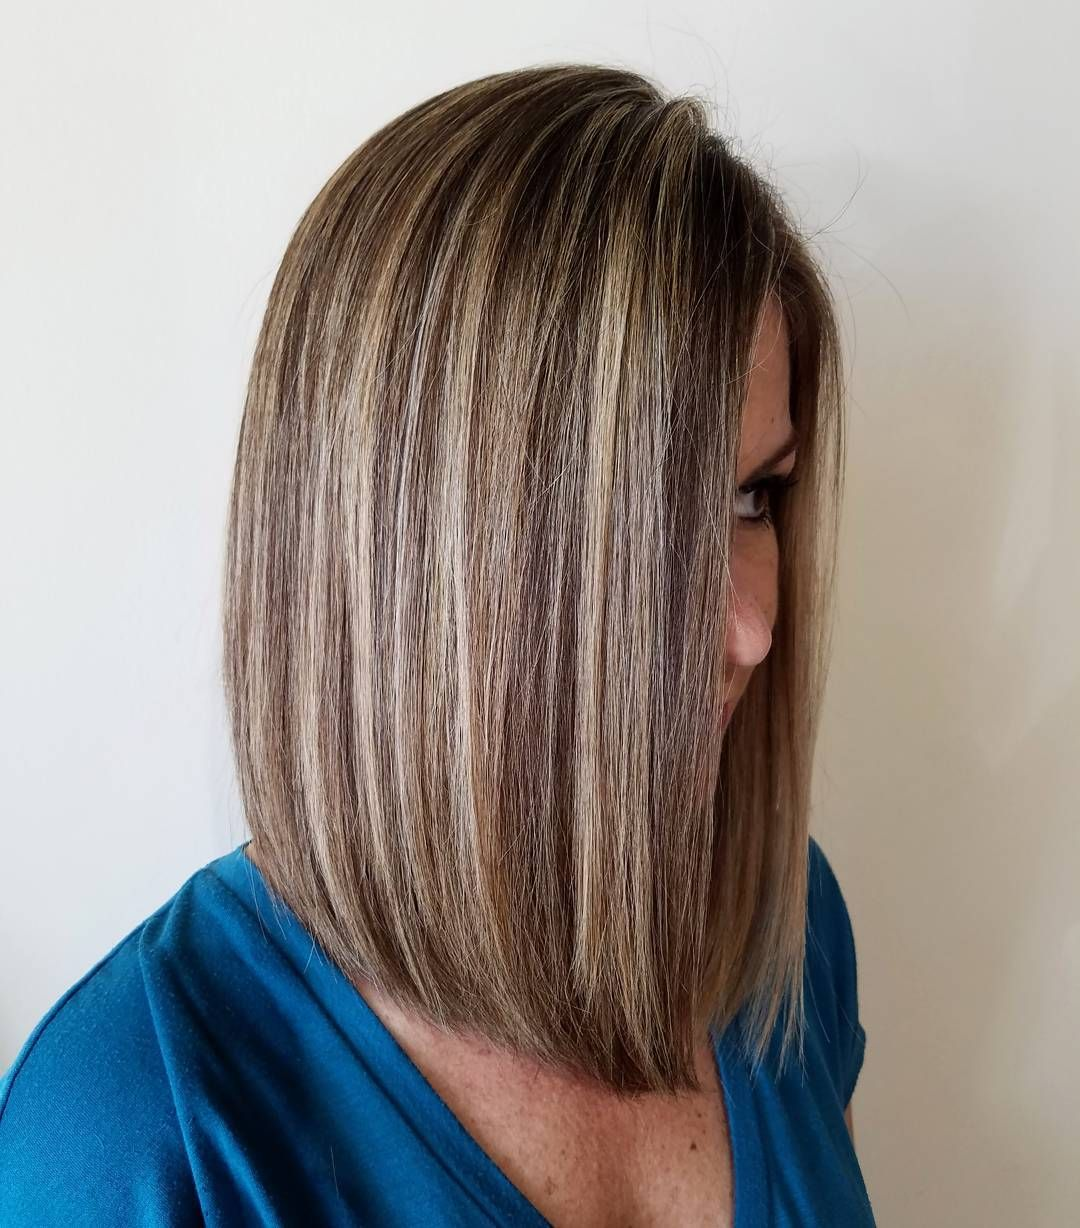 20 Best Hair Color Ideas In The World Of Chunky Highlights Brown Hair With Blonde Highlights Blonde Highlights Brown Blonde Hair